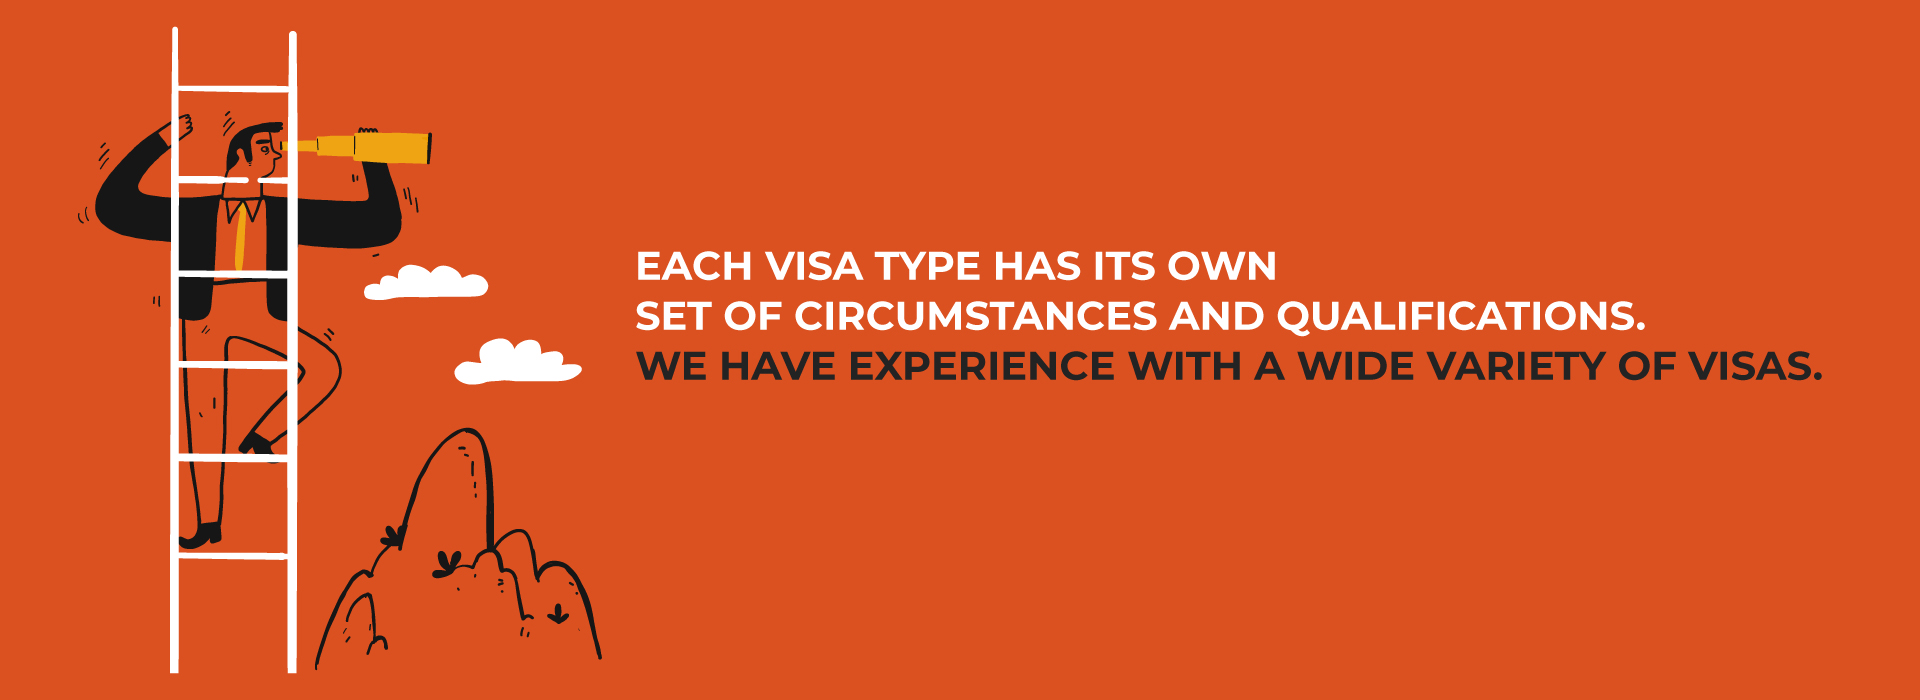 Each visa type has its own set of circumstances and qualifications. We have experience with a wide variety of visas.